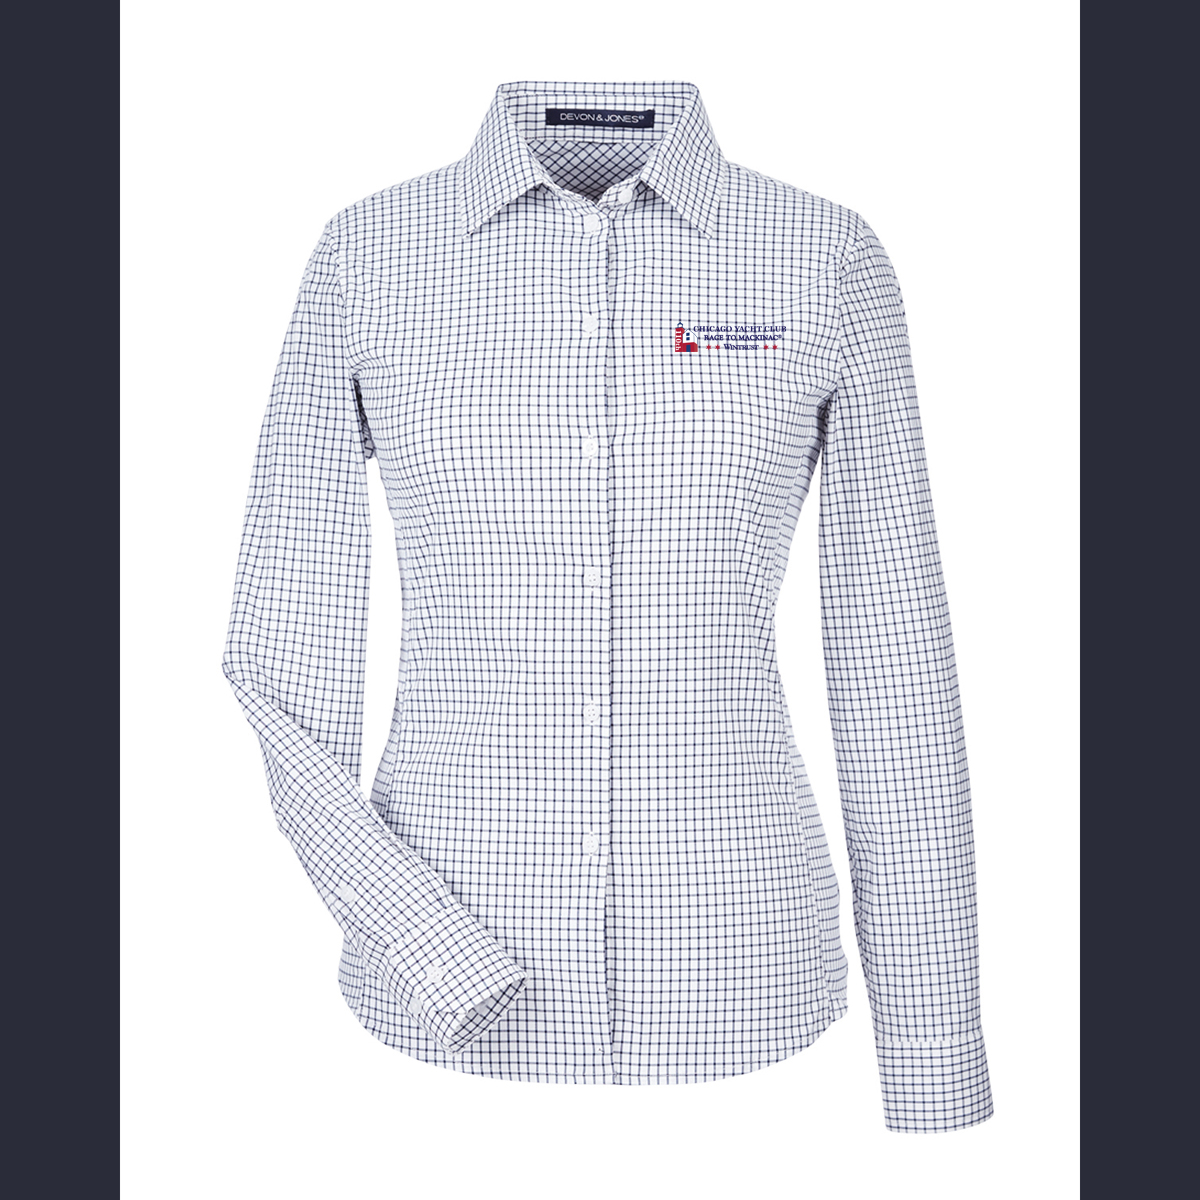 Chicago Mackinac Race 2018 - Ladies' Micro Windowpane Shirt